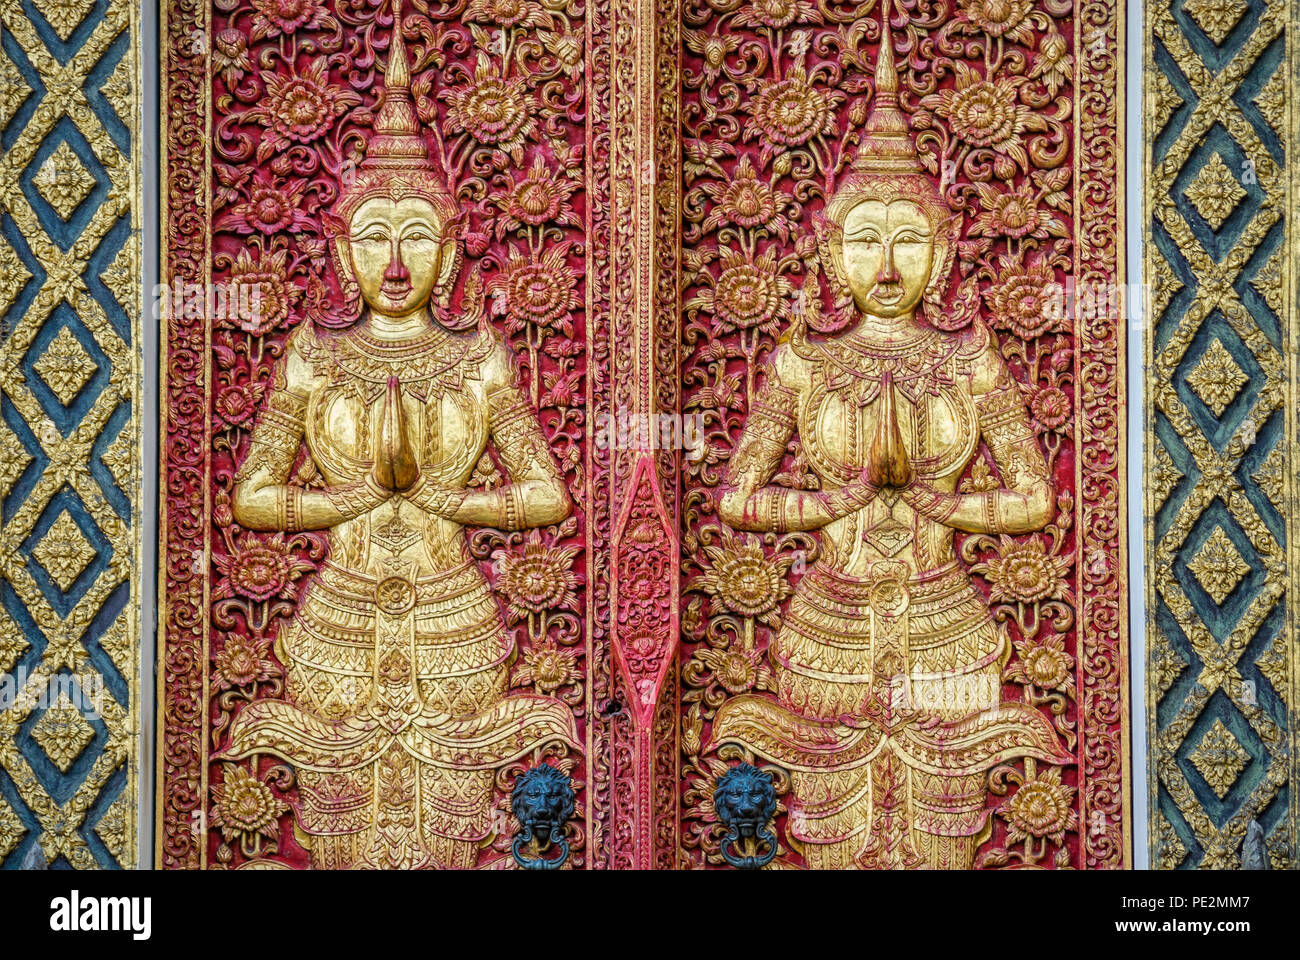 Ubosot artwork detail at Wat Ketkaram Buddhist Temple in Chiang Mai, North Thailand |  Detail von Ubosot Kunsthandwerk am Wat Ketkaram Tempel in Chian - Stock Image